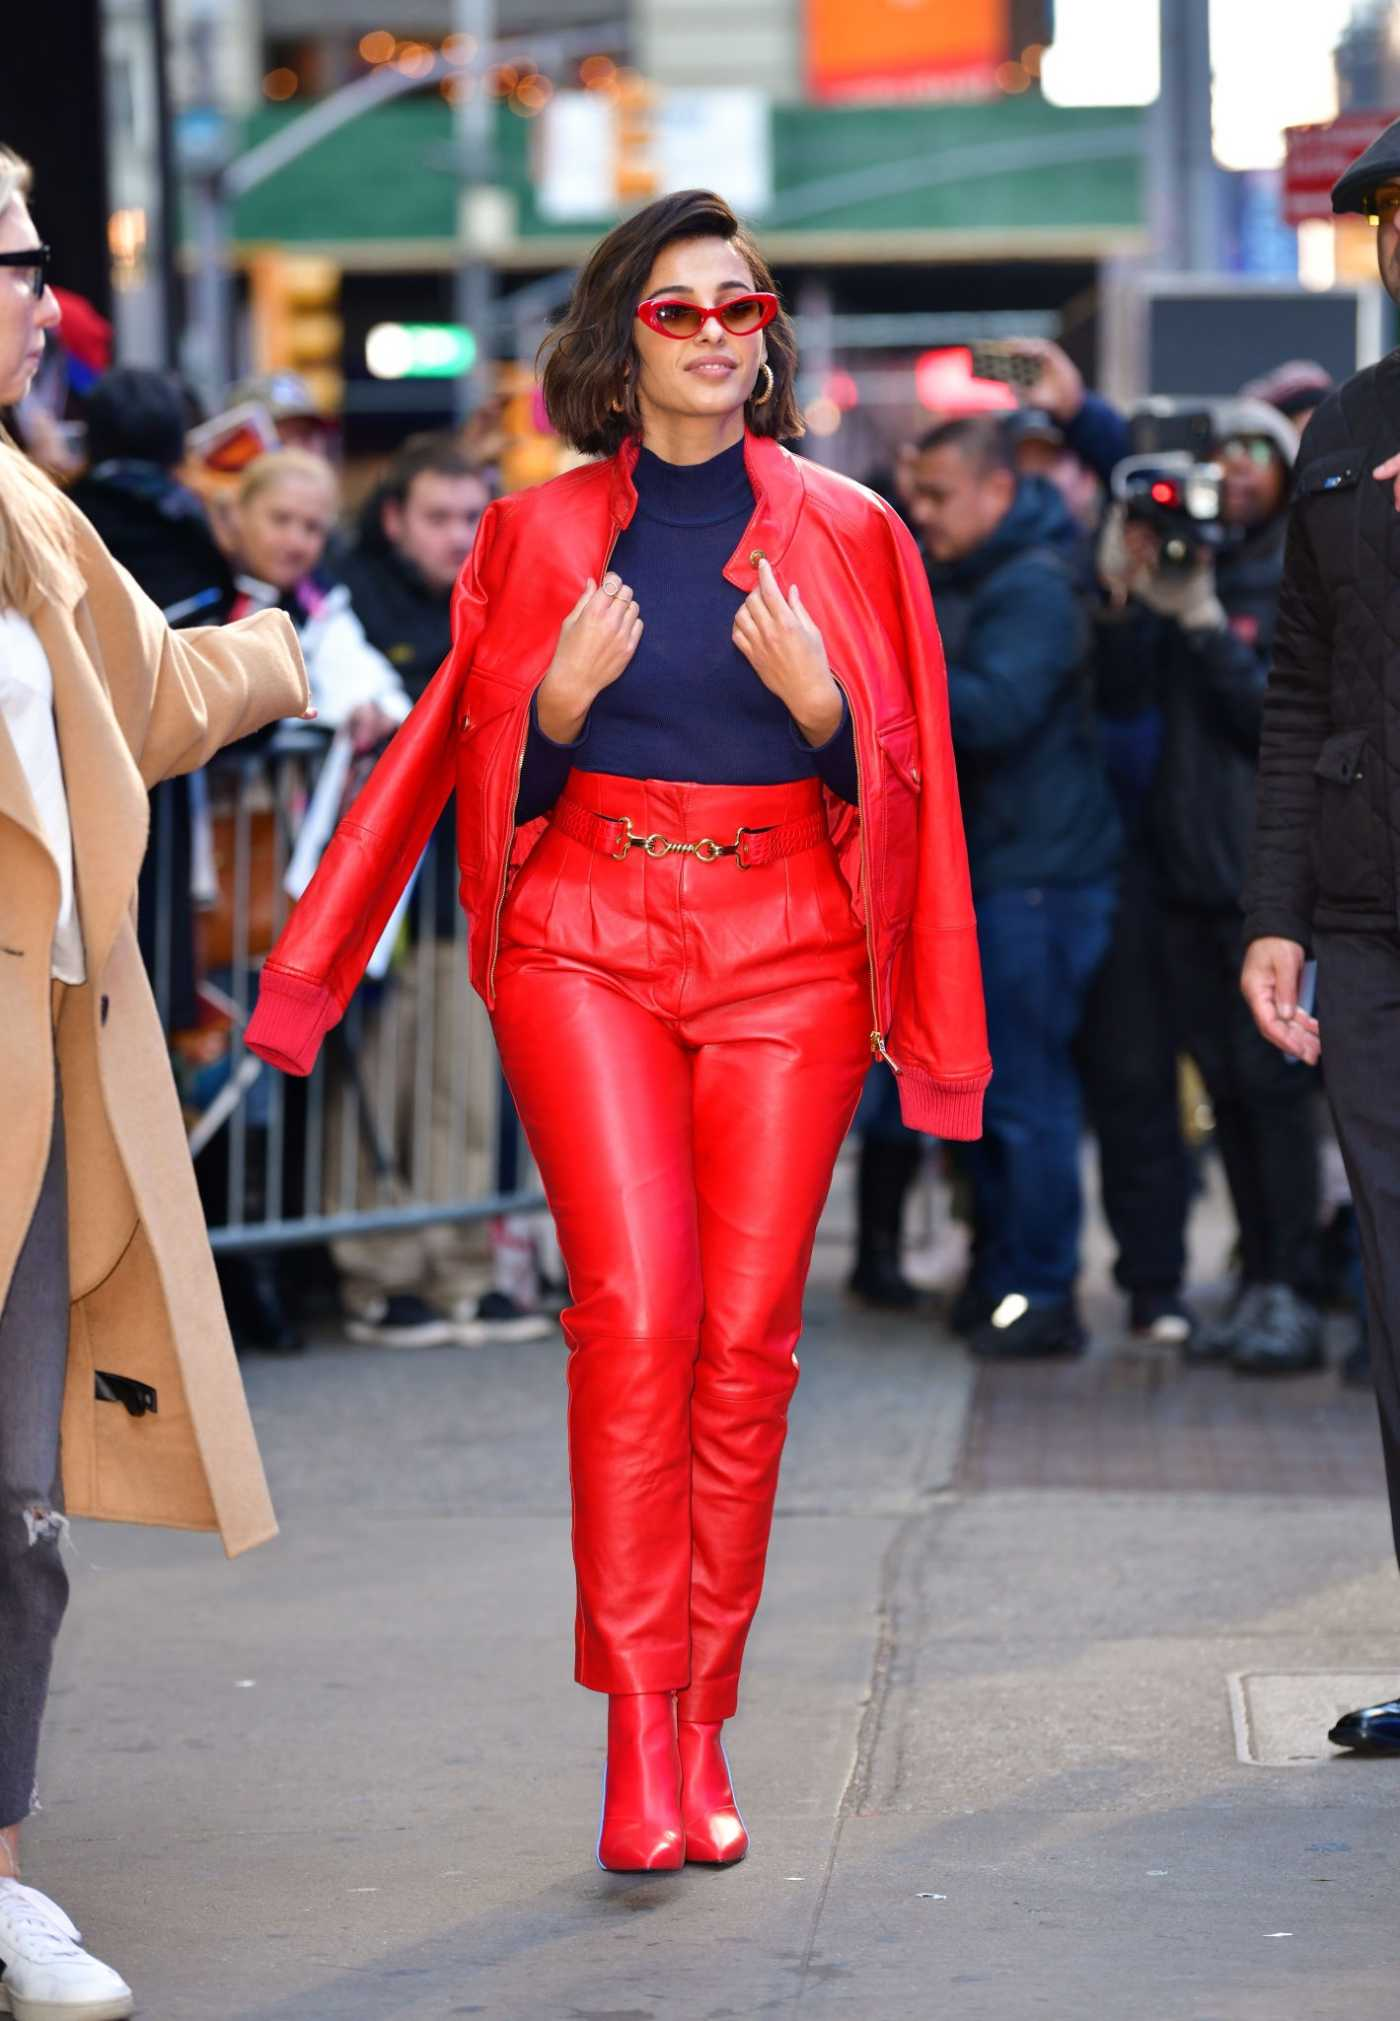 Naomi Scott in a Red Suit Leaves Good Morning America in New York City 11/06/2019